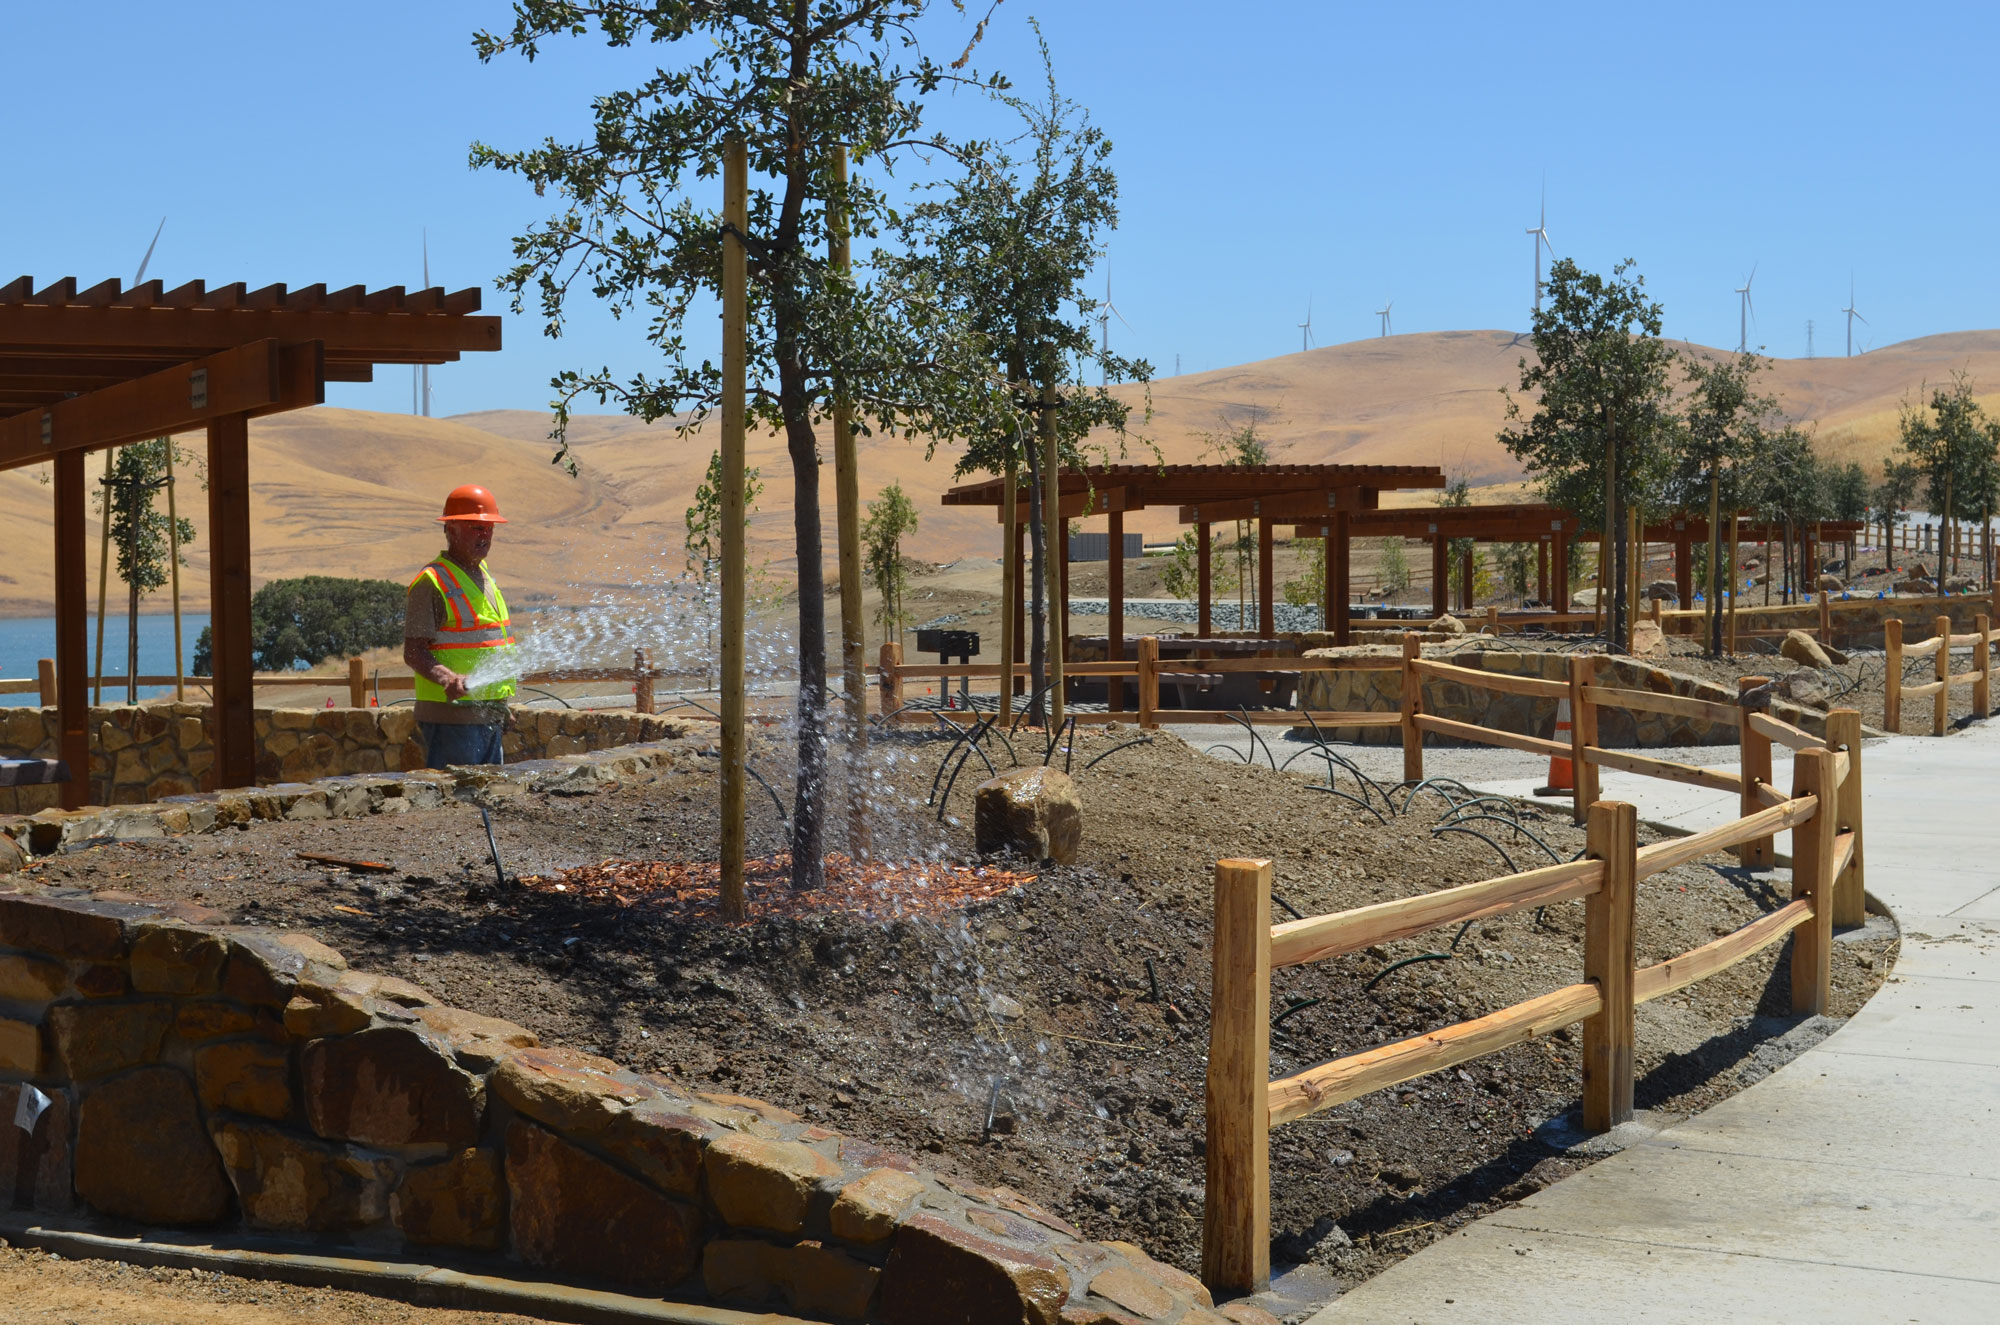 A construction worker irrigates oak trees planted